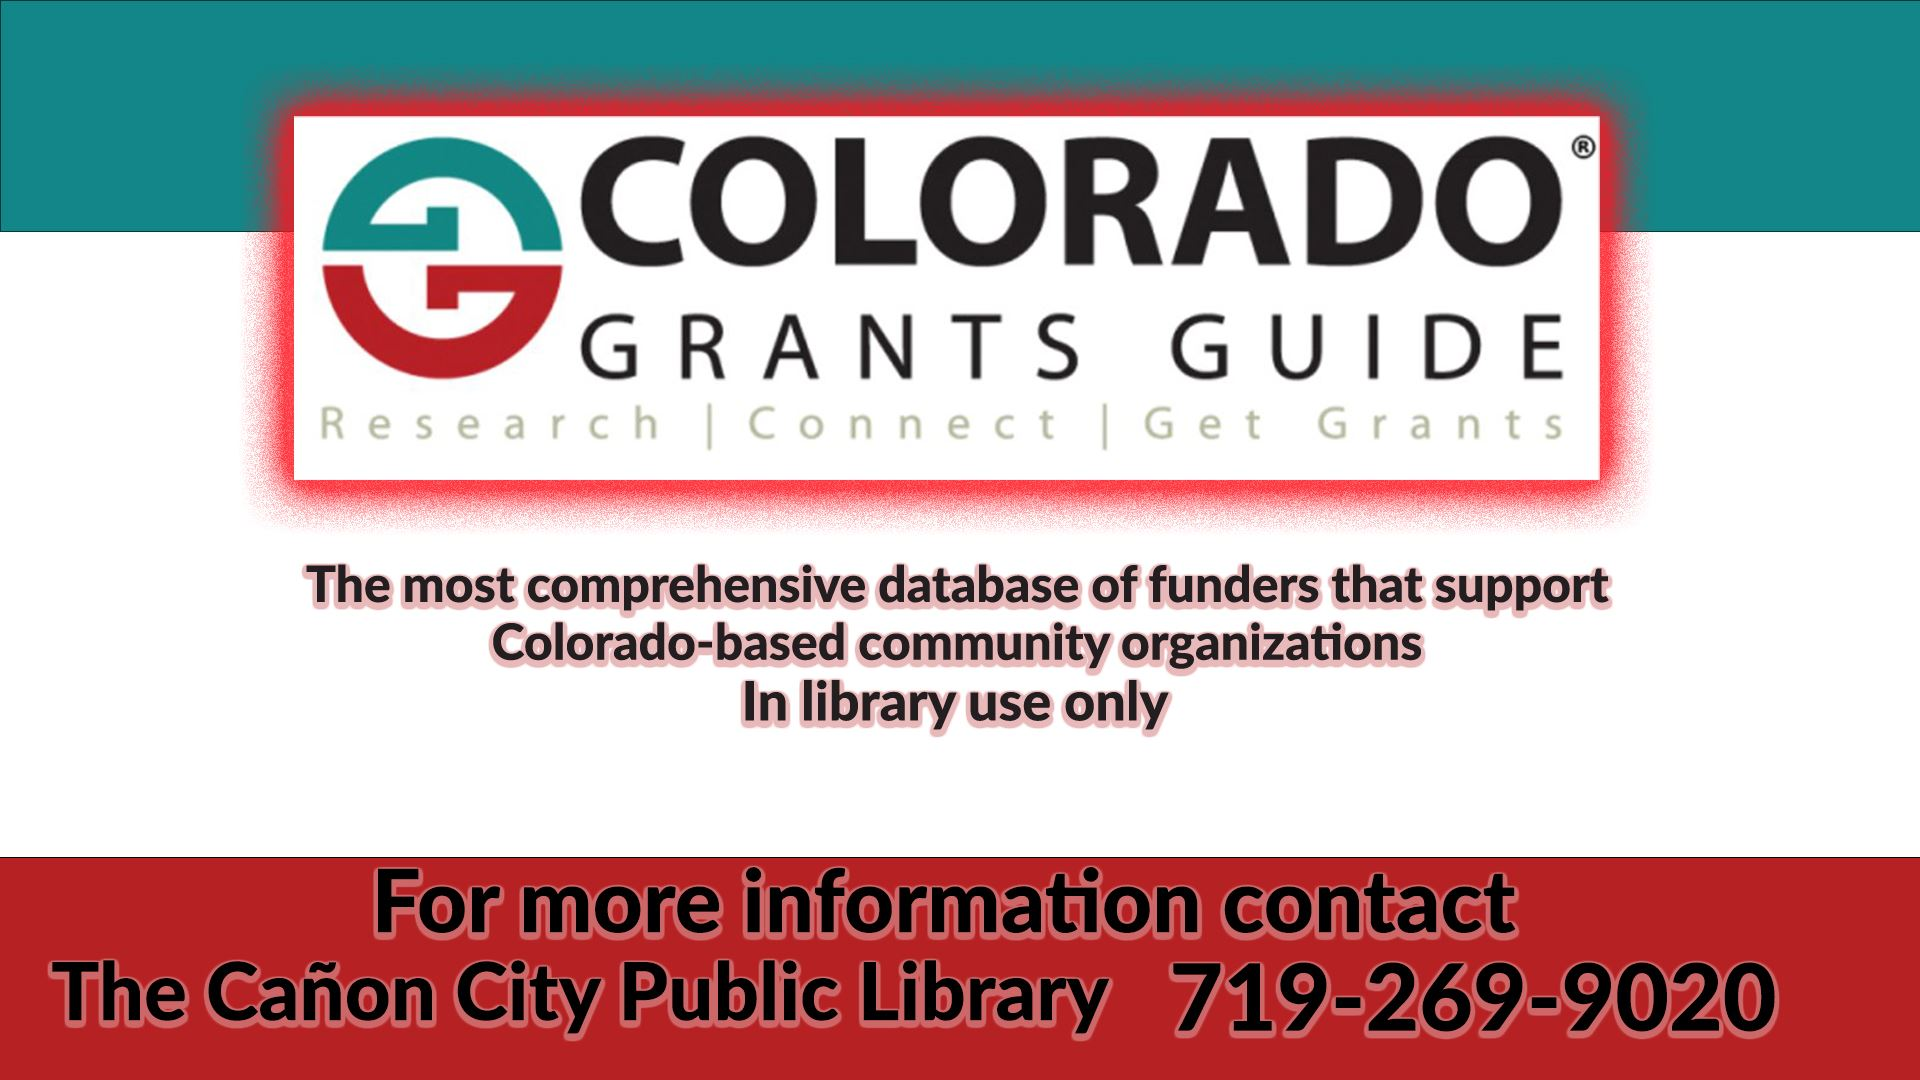 colorado grant guide flyer